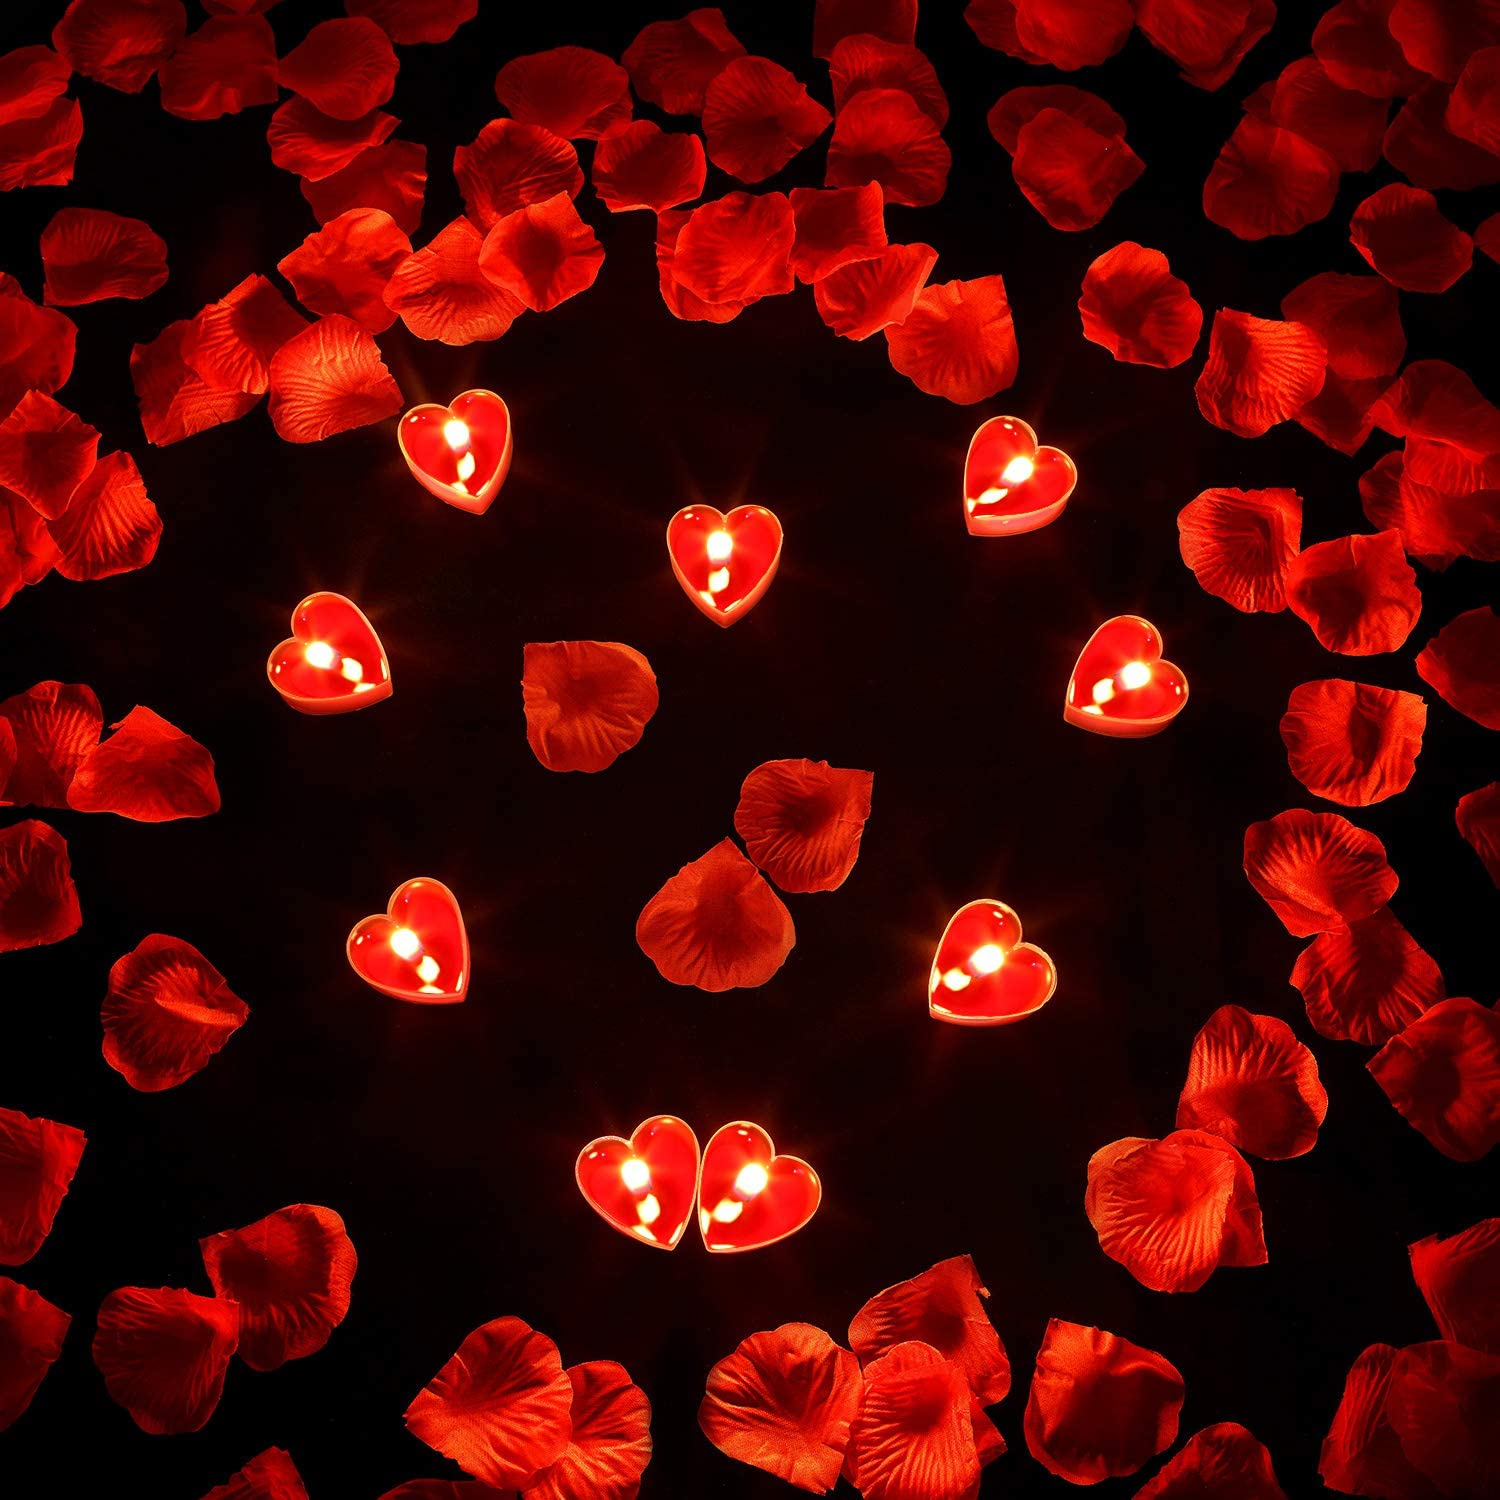 9 Packs Heart Shape Candles Romantic Love Candle Tealight Candles with 200 Pieces Silk Rose Petals Girl Scatter Petals for Wedding Valentine's Day Table Centerpiece Aisle Dinner Cake Decor Party Favor